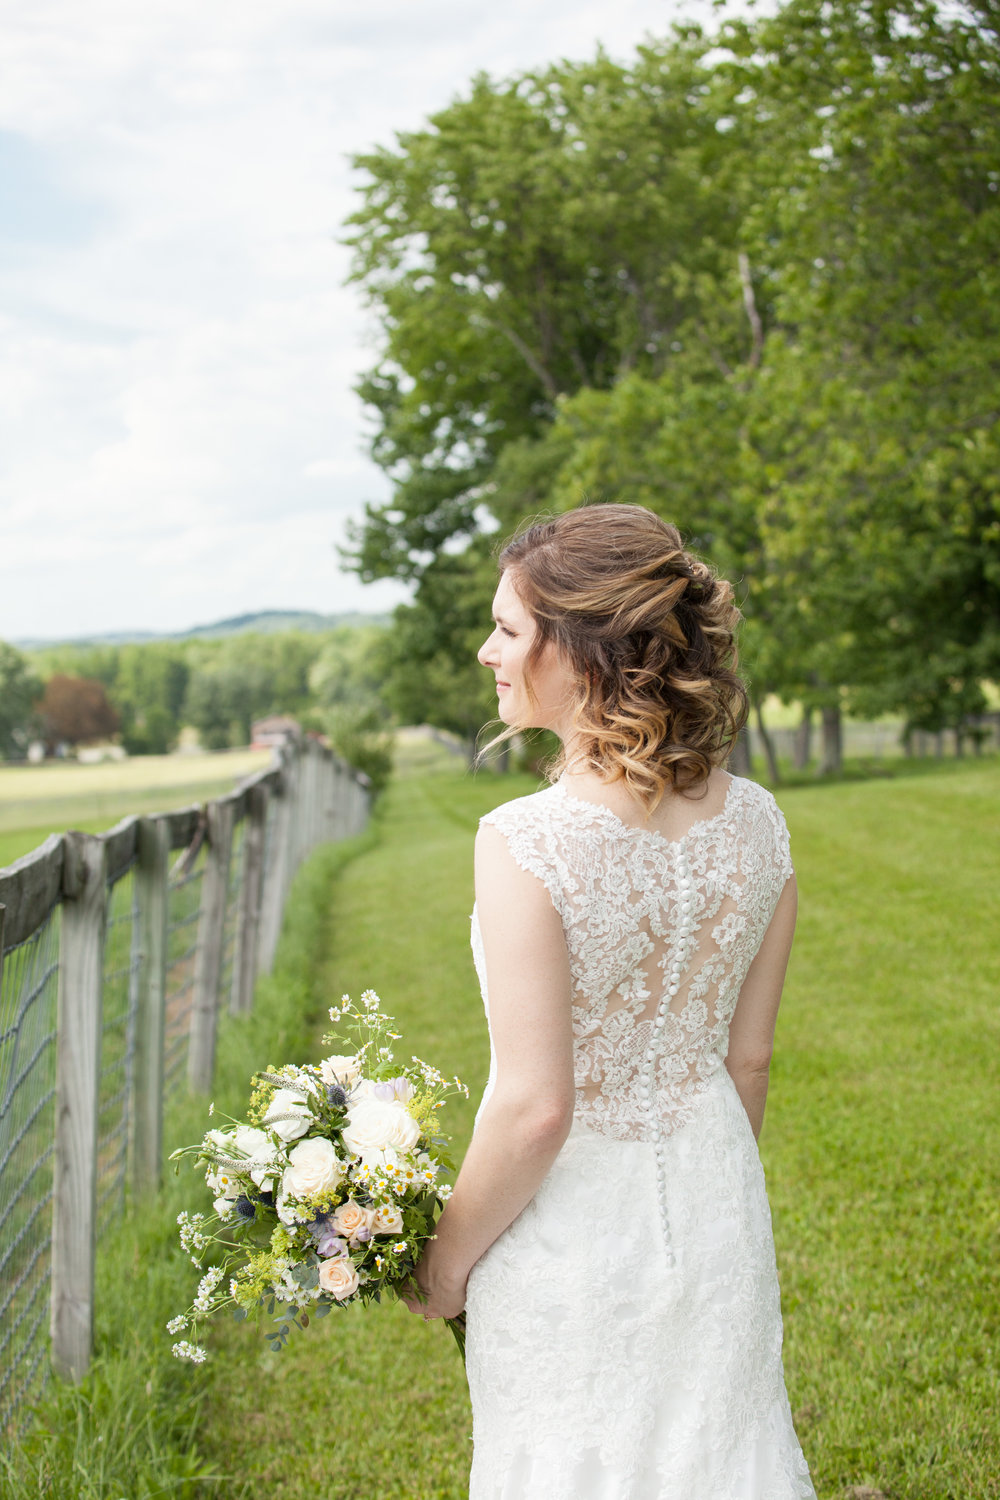 Bride at the Farm fence.jpg